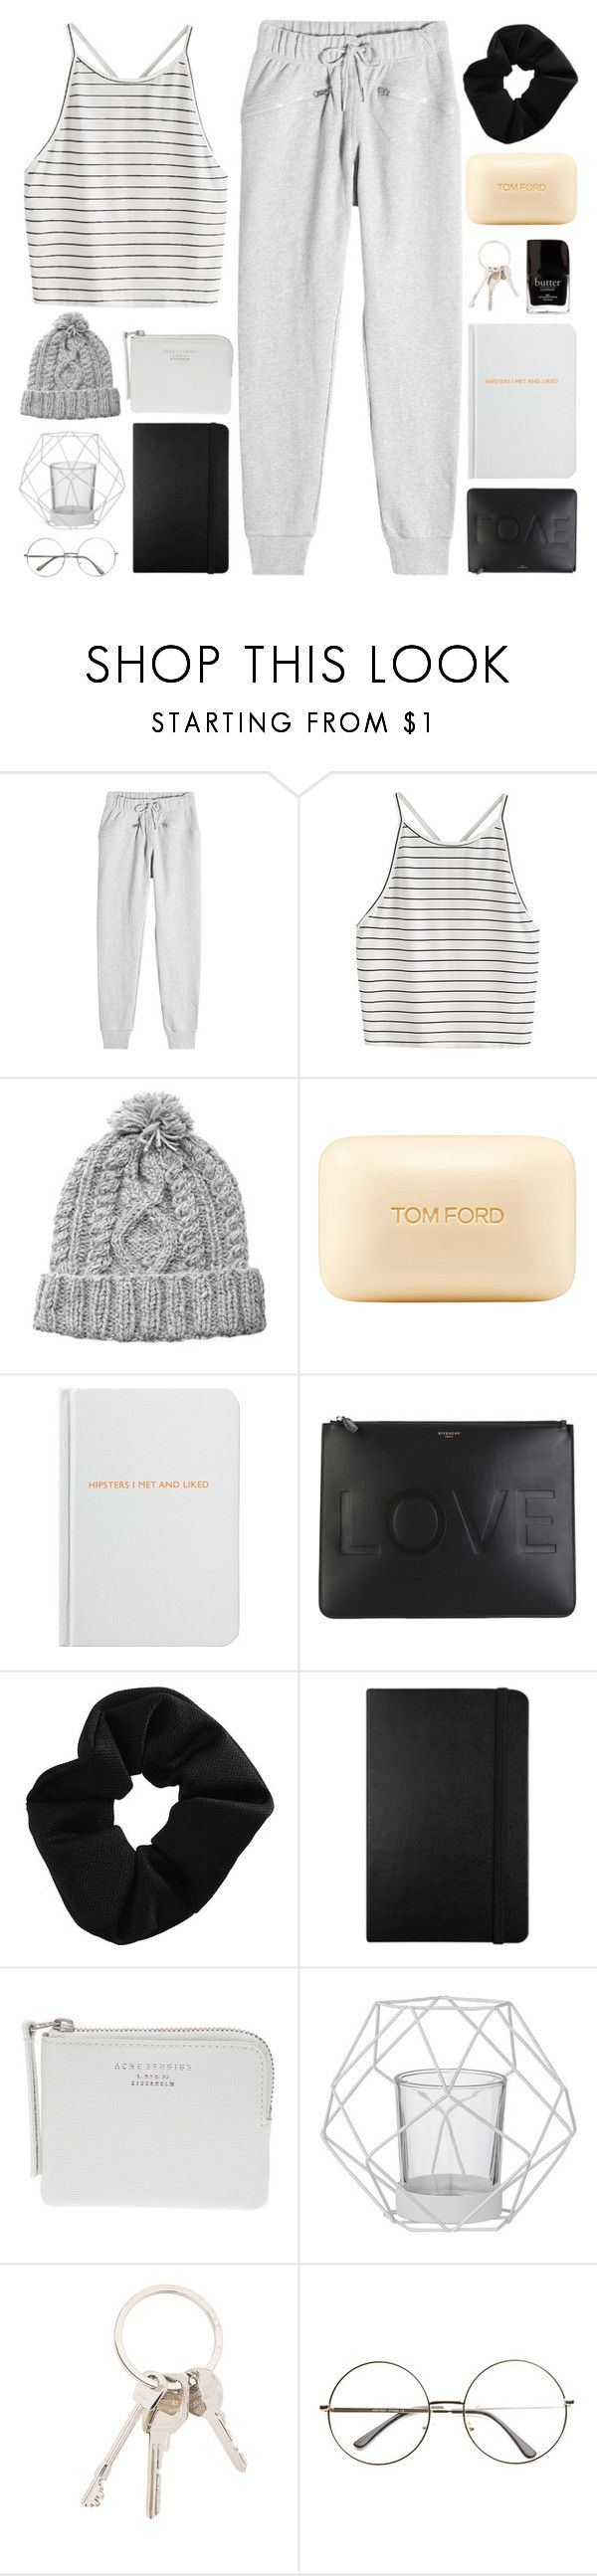 """""""NOBODY'S PERFECT"""" by expresng ❤ liked on Polyvore featuring adidas, HANDSOM, Tom Ford, Archie Grand, Givenchy, Topshop, Moleskine, Acne Studios, Bloomingville and Jack Black"""